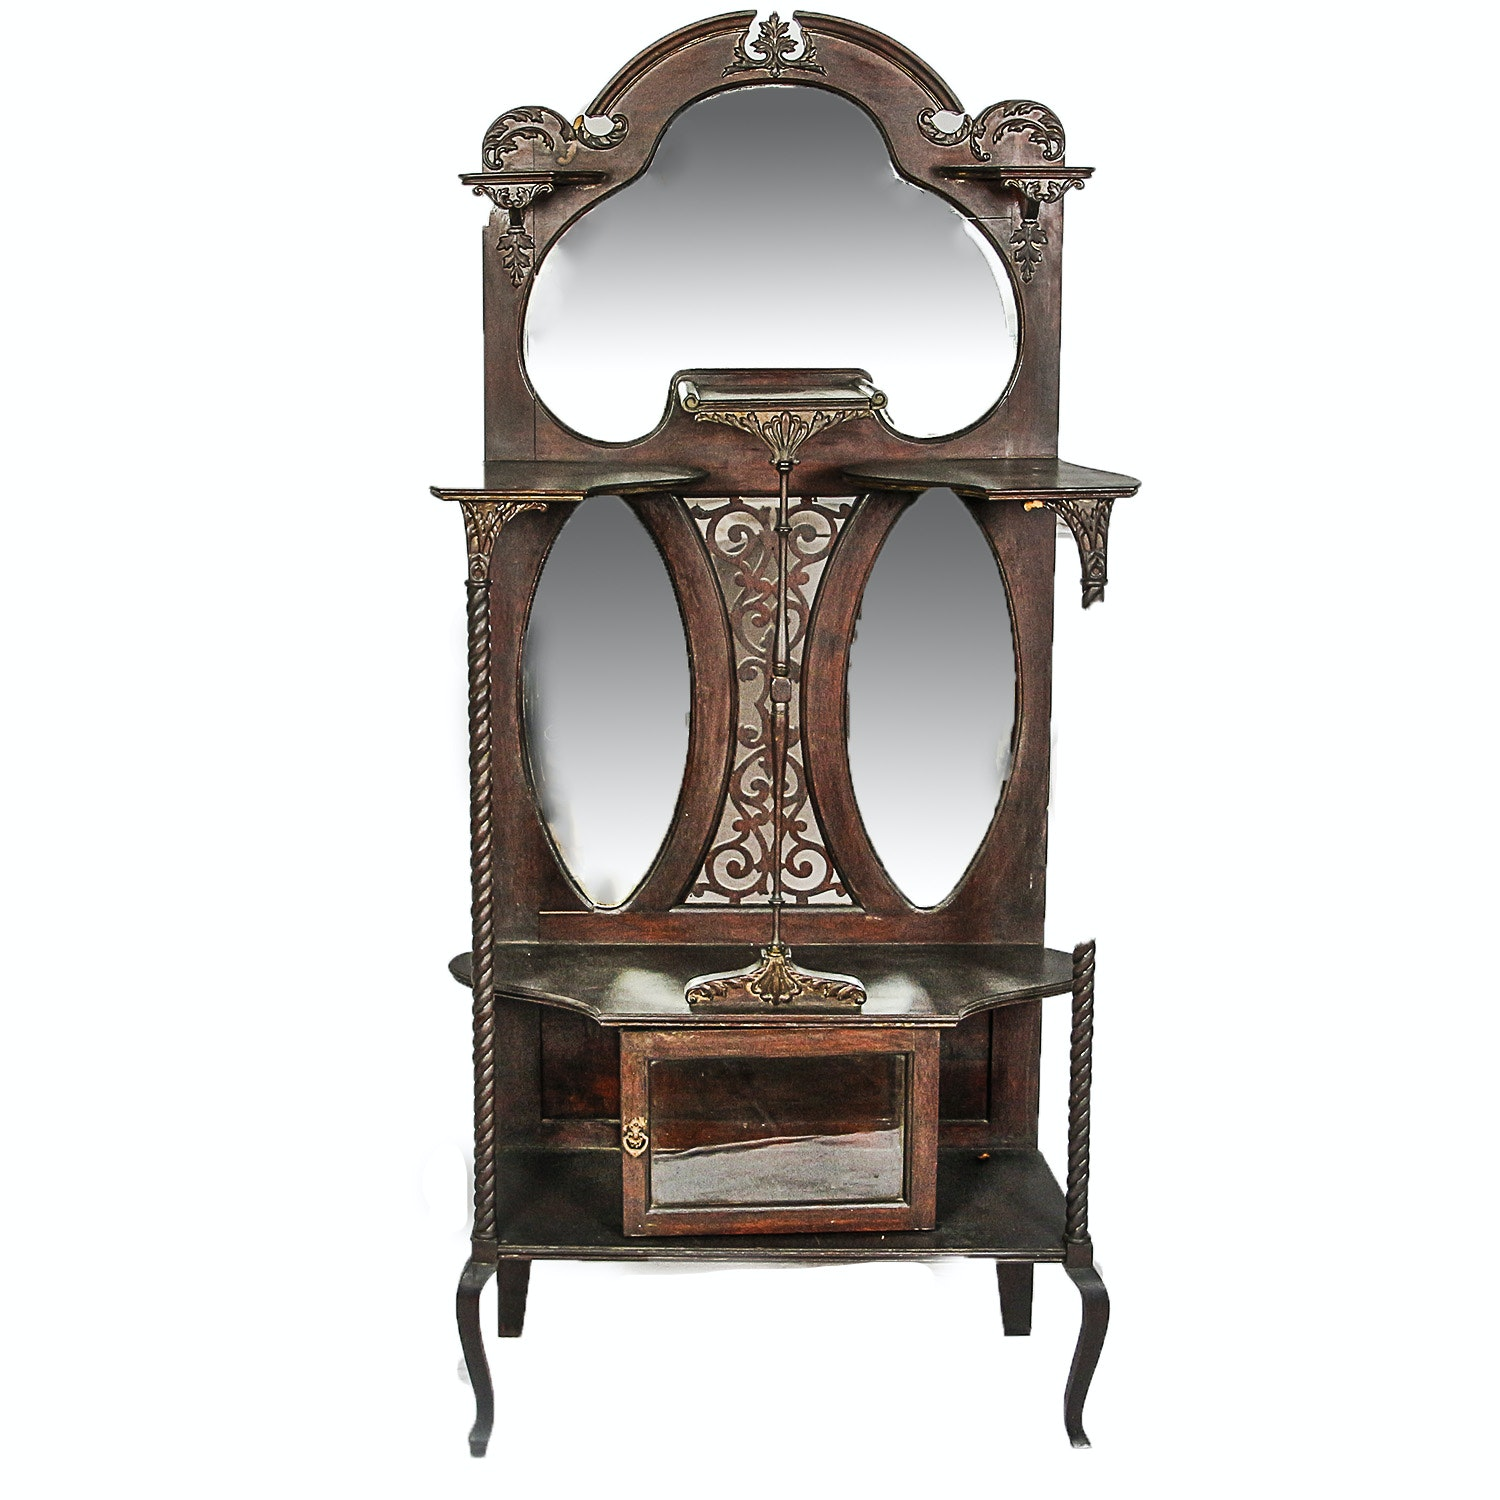 Antique Victorian Mirrored Panel Étagère